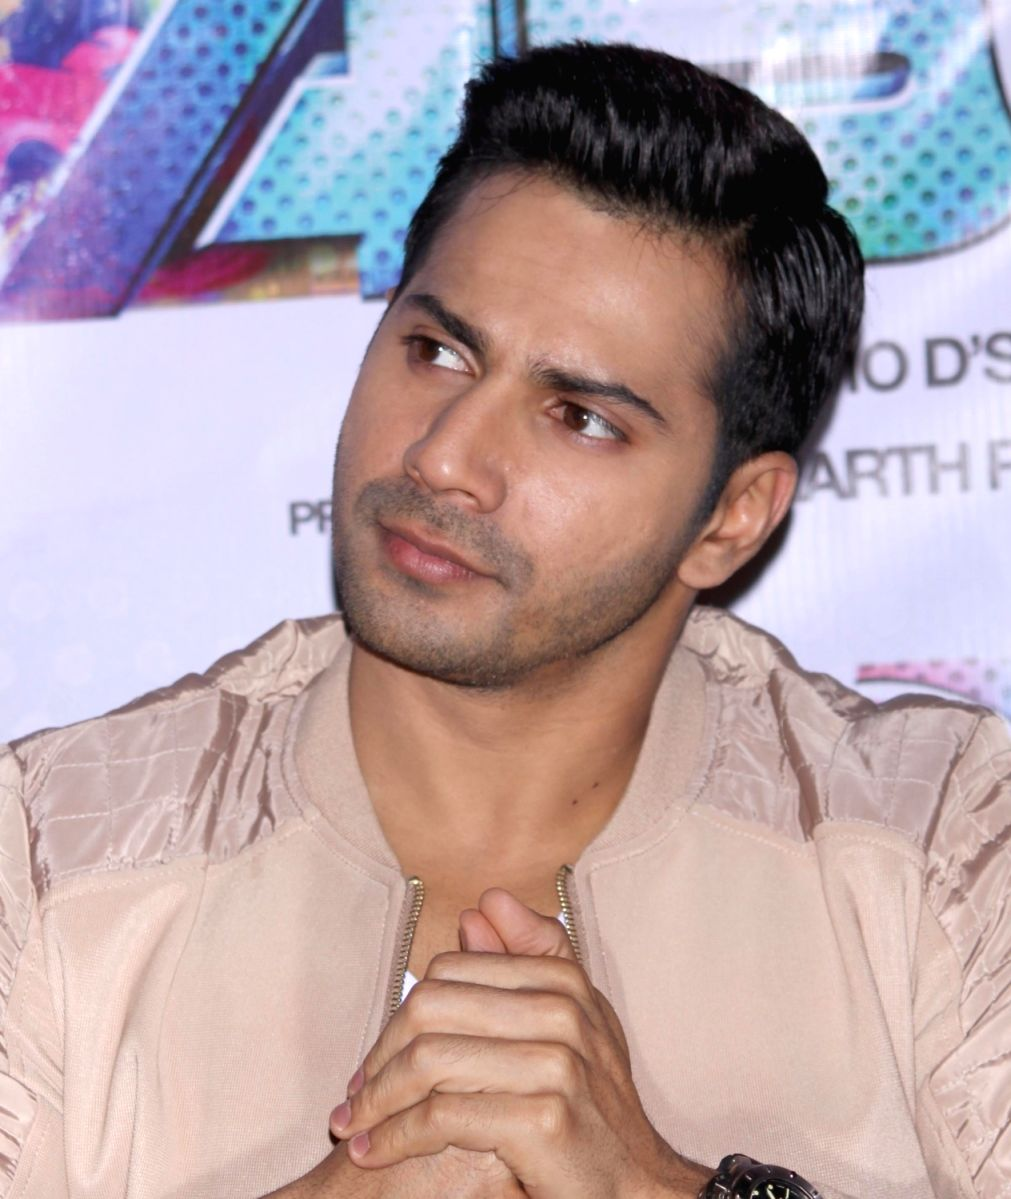 Varun Dhawan has also openly talked about his struggles with mental health. Though he wasn't diagnosed with clinical depression, he sure was miserable until he sought help.